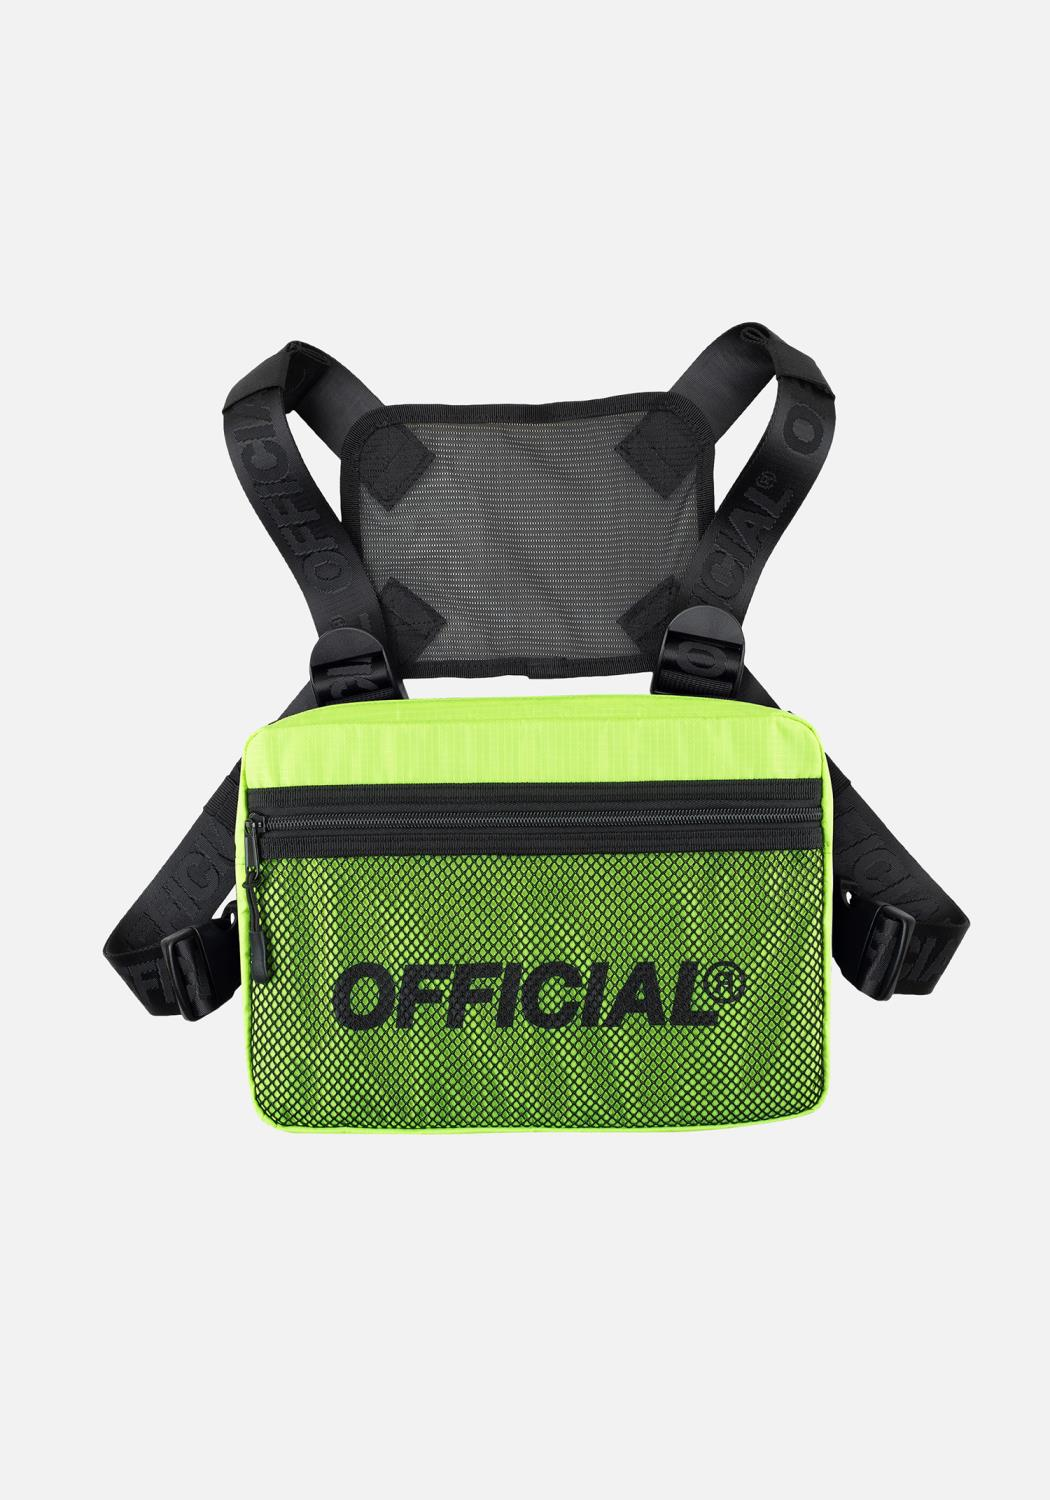 OFFICIAL - Melrose 2.0 Chest Utility